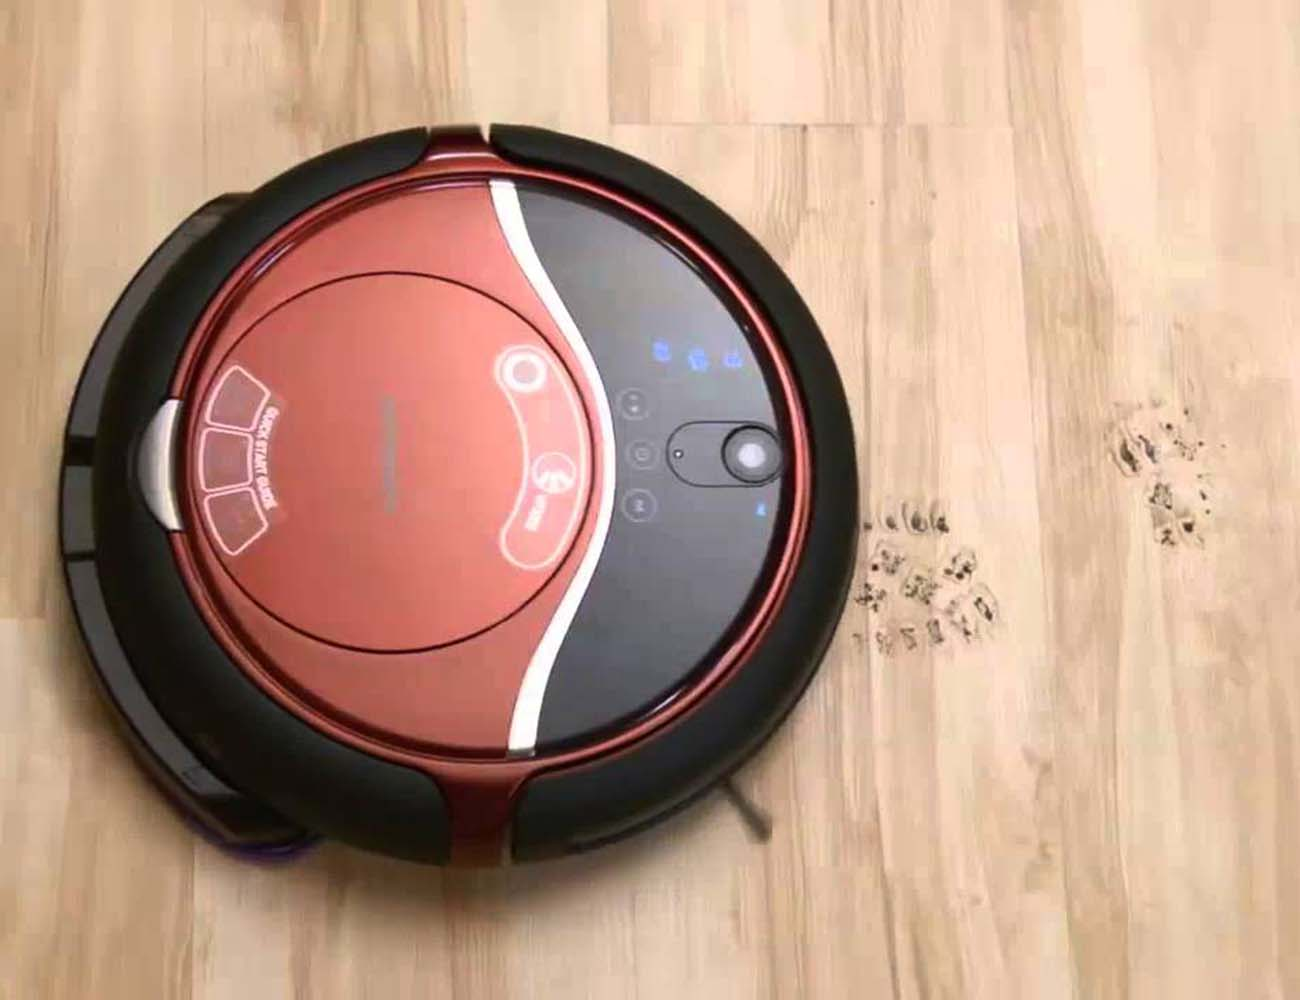 RYDIS+Pro+RoboVacMop+Hybrid+Robot+Vacuum+Cleaner+By+Moneual